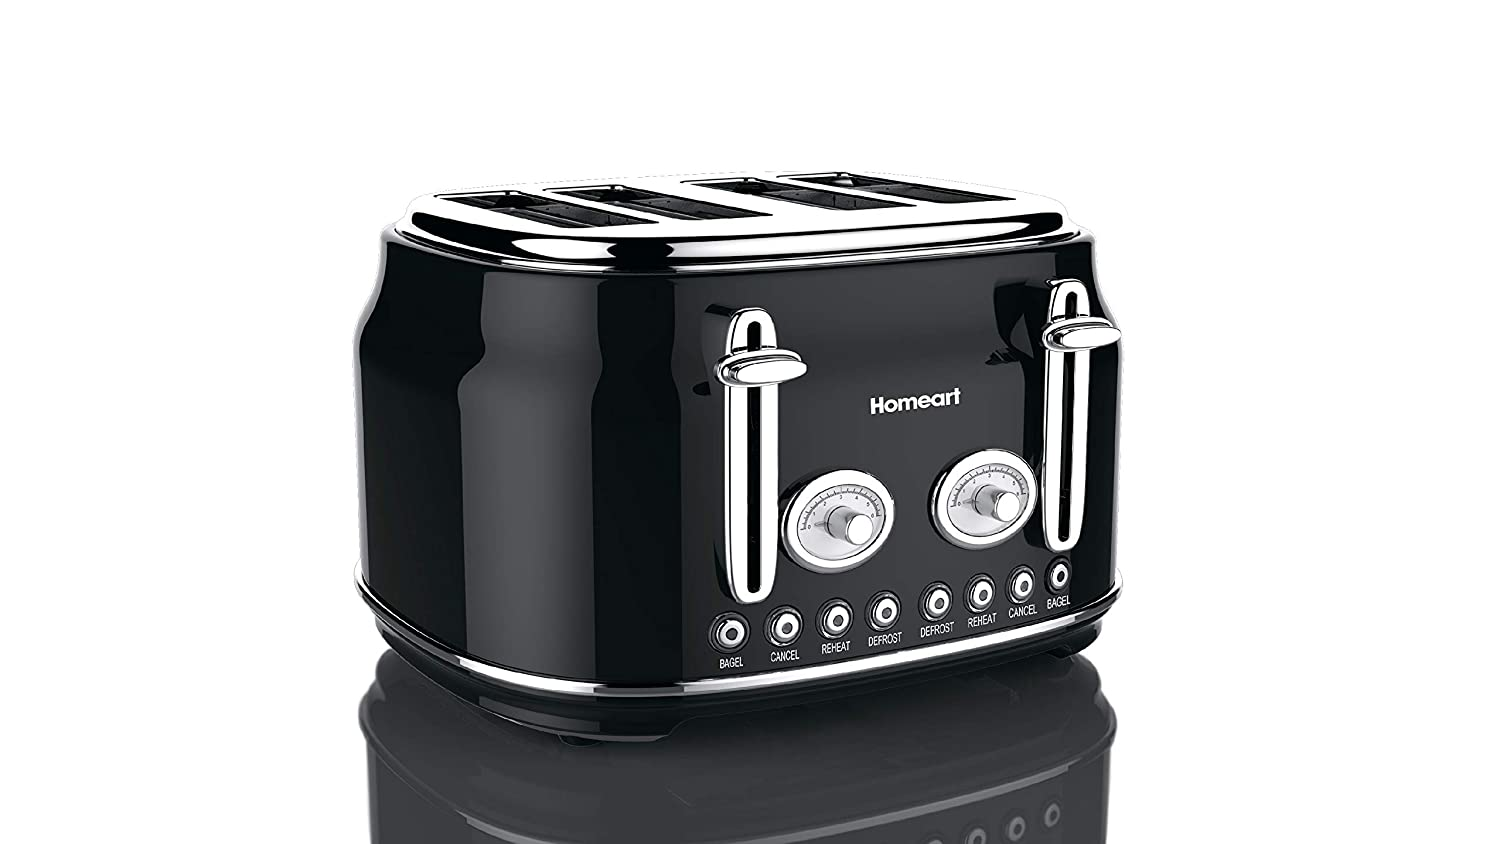 Artisan 4 Slot Toaster by Homeart | 2019 Best Electric Toaster with Multi-Function Toaster Options | Vintage Toaster Stainless Steel (Black)